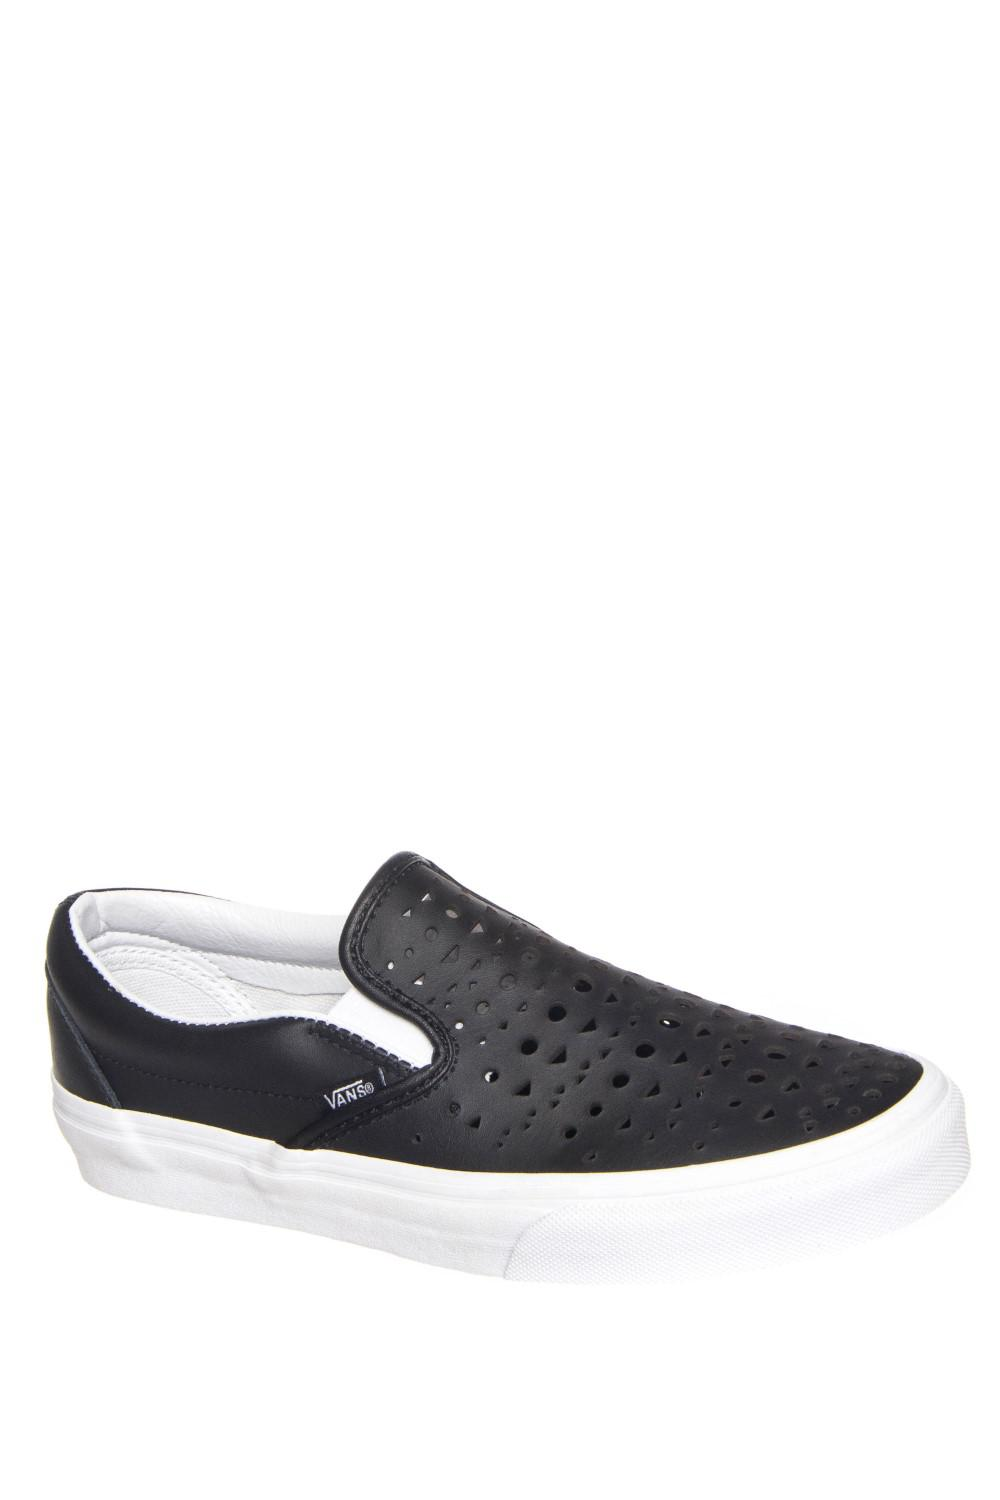 05728dc076 Lyst - Vans Classic Slip-on Cut Out Geo Black Leather Trainers 6.5 ...